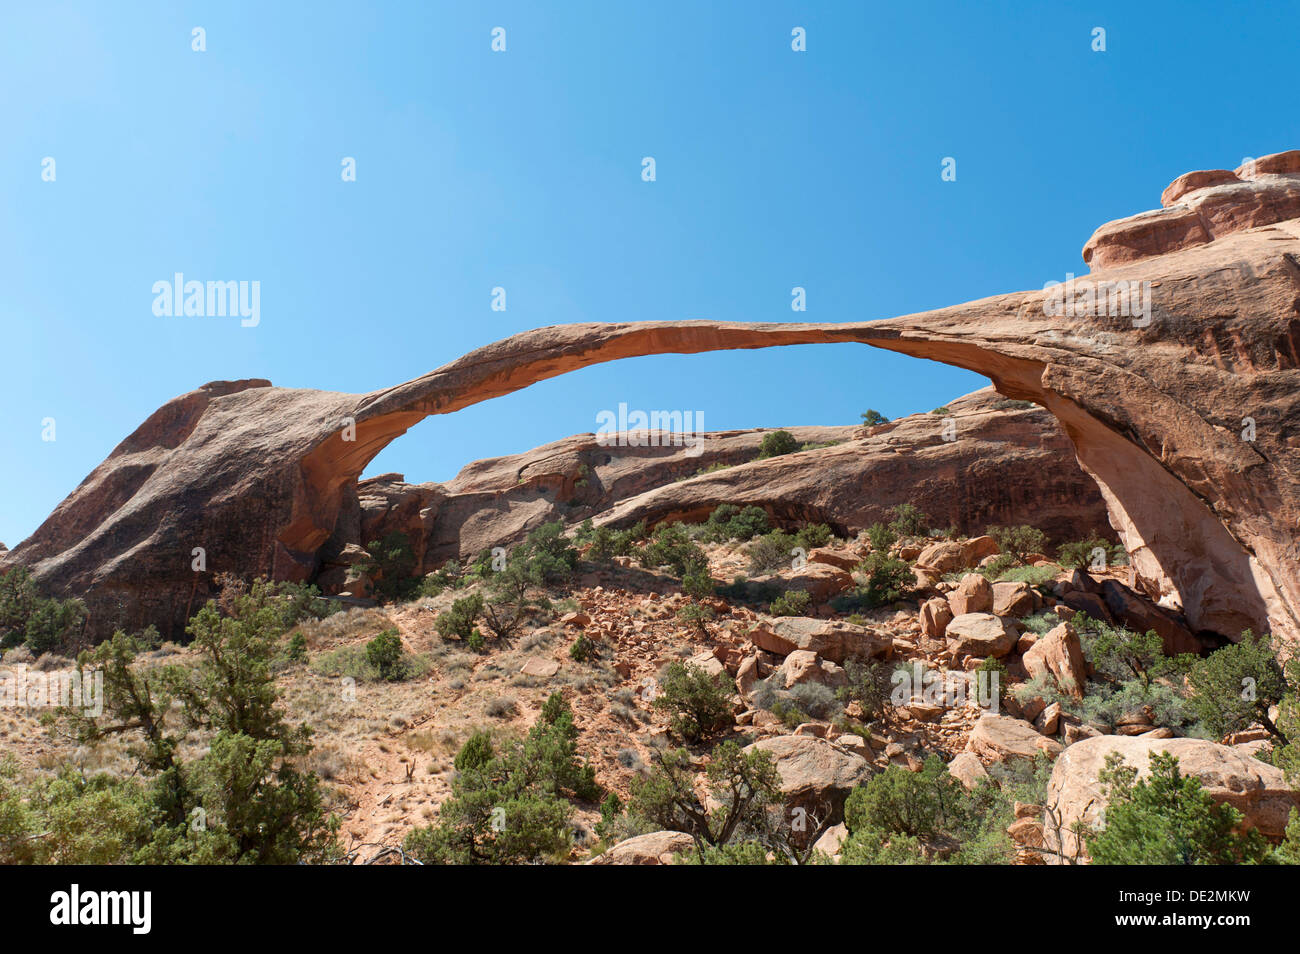 Red sandstone, Landscape Arch, fragile natural stone arch, Arches National Park, Utah, Western United States - Stock Image